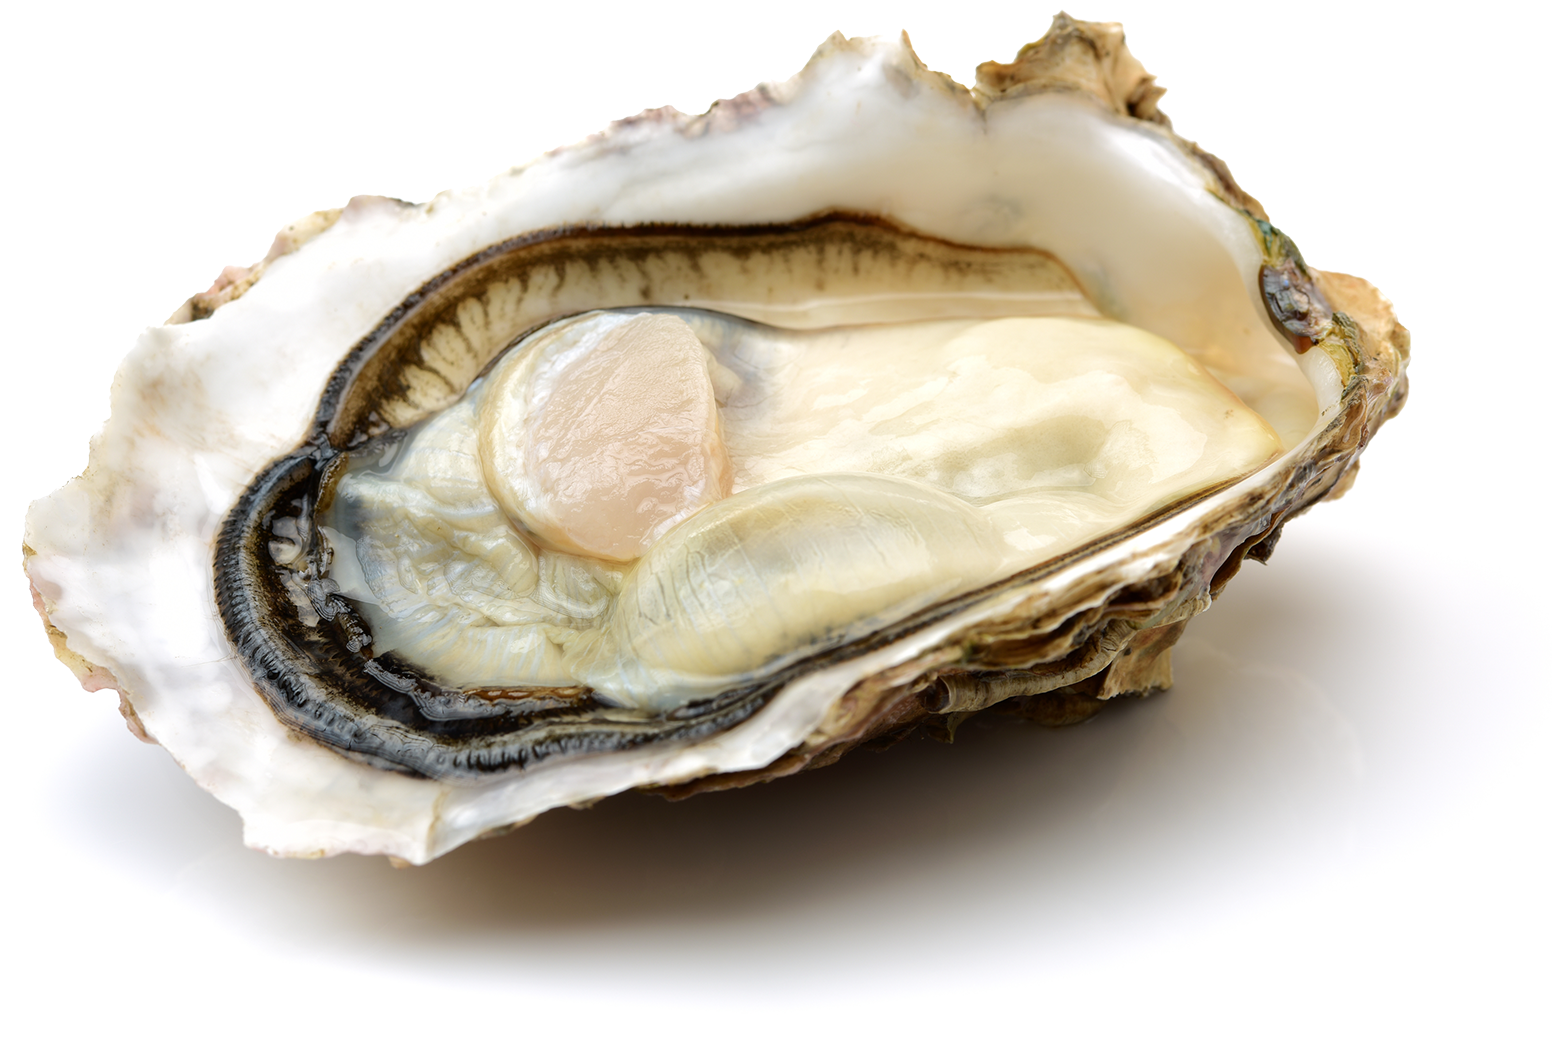 Oysters available in stock and pre-order at J.J. McDonnell & Co.